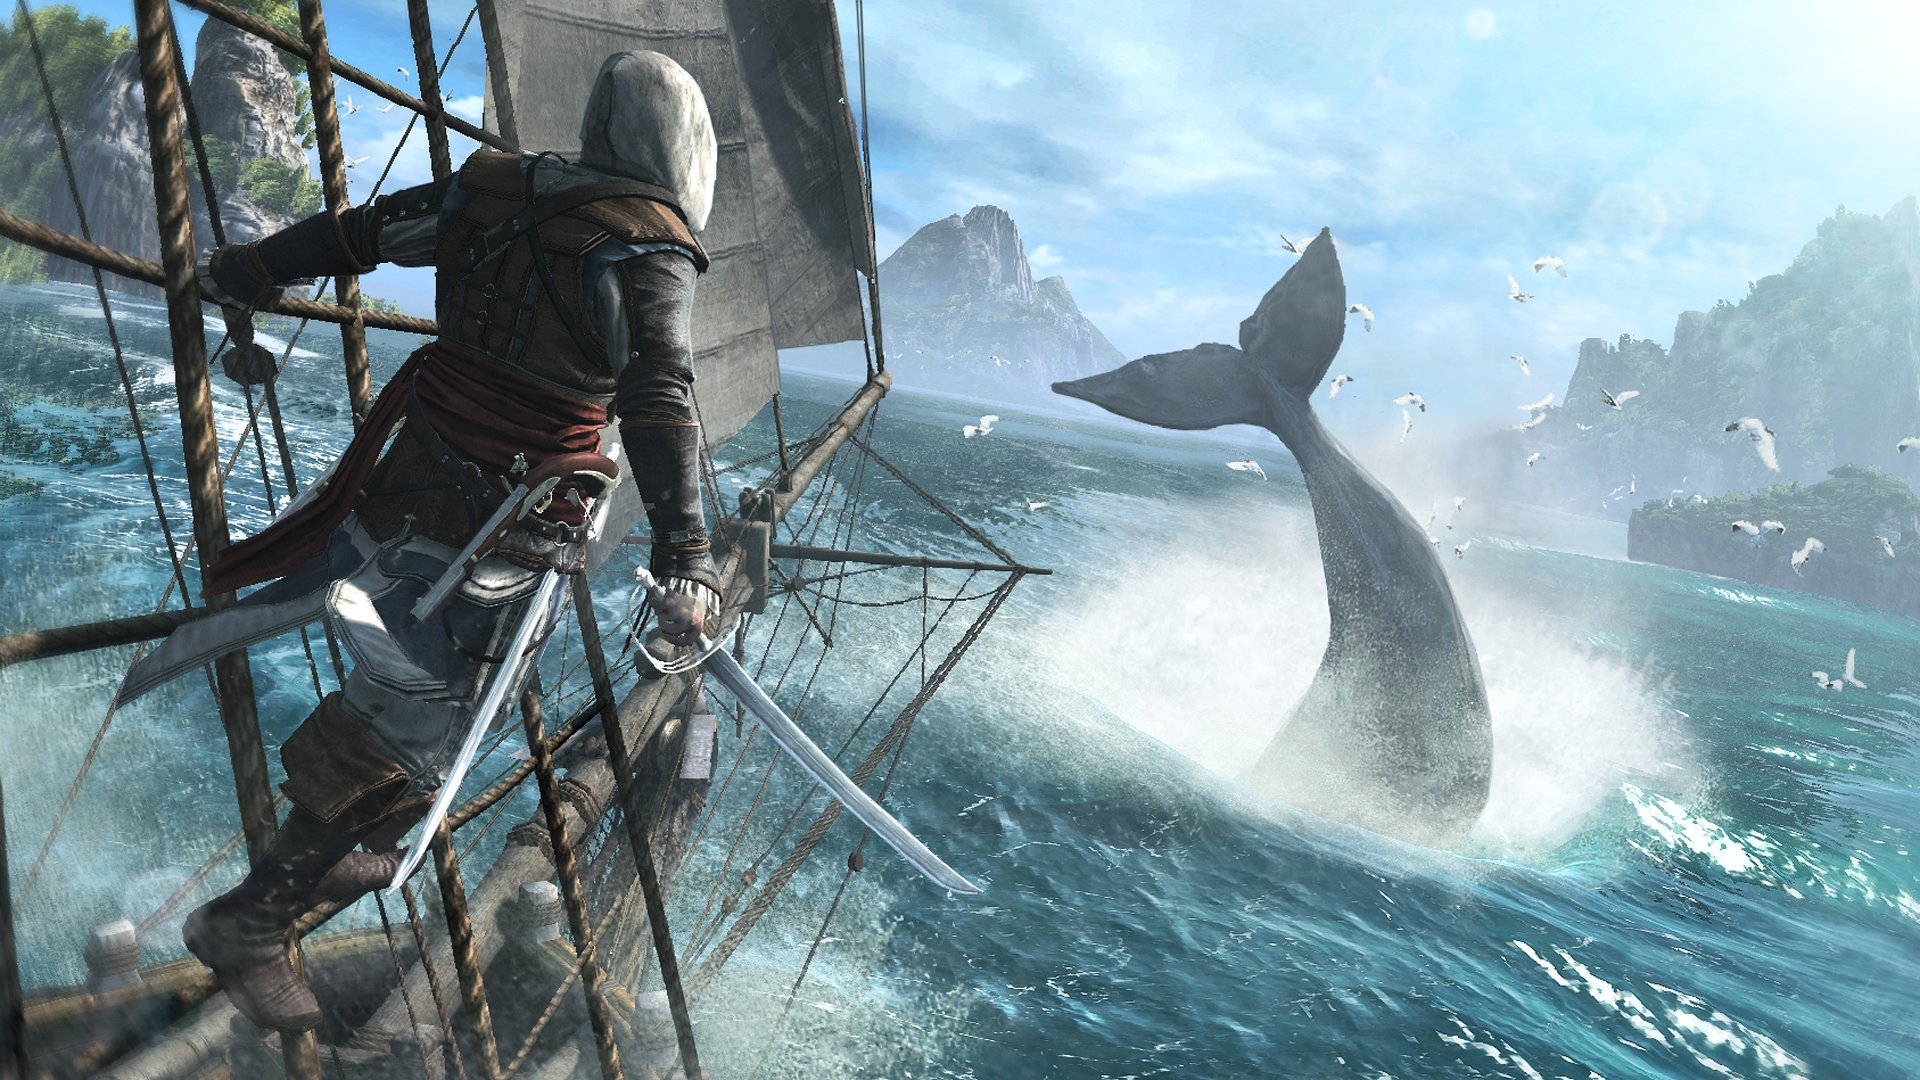 file_59162_assassins-creed-iv-black-flag-preview-1